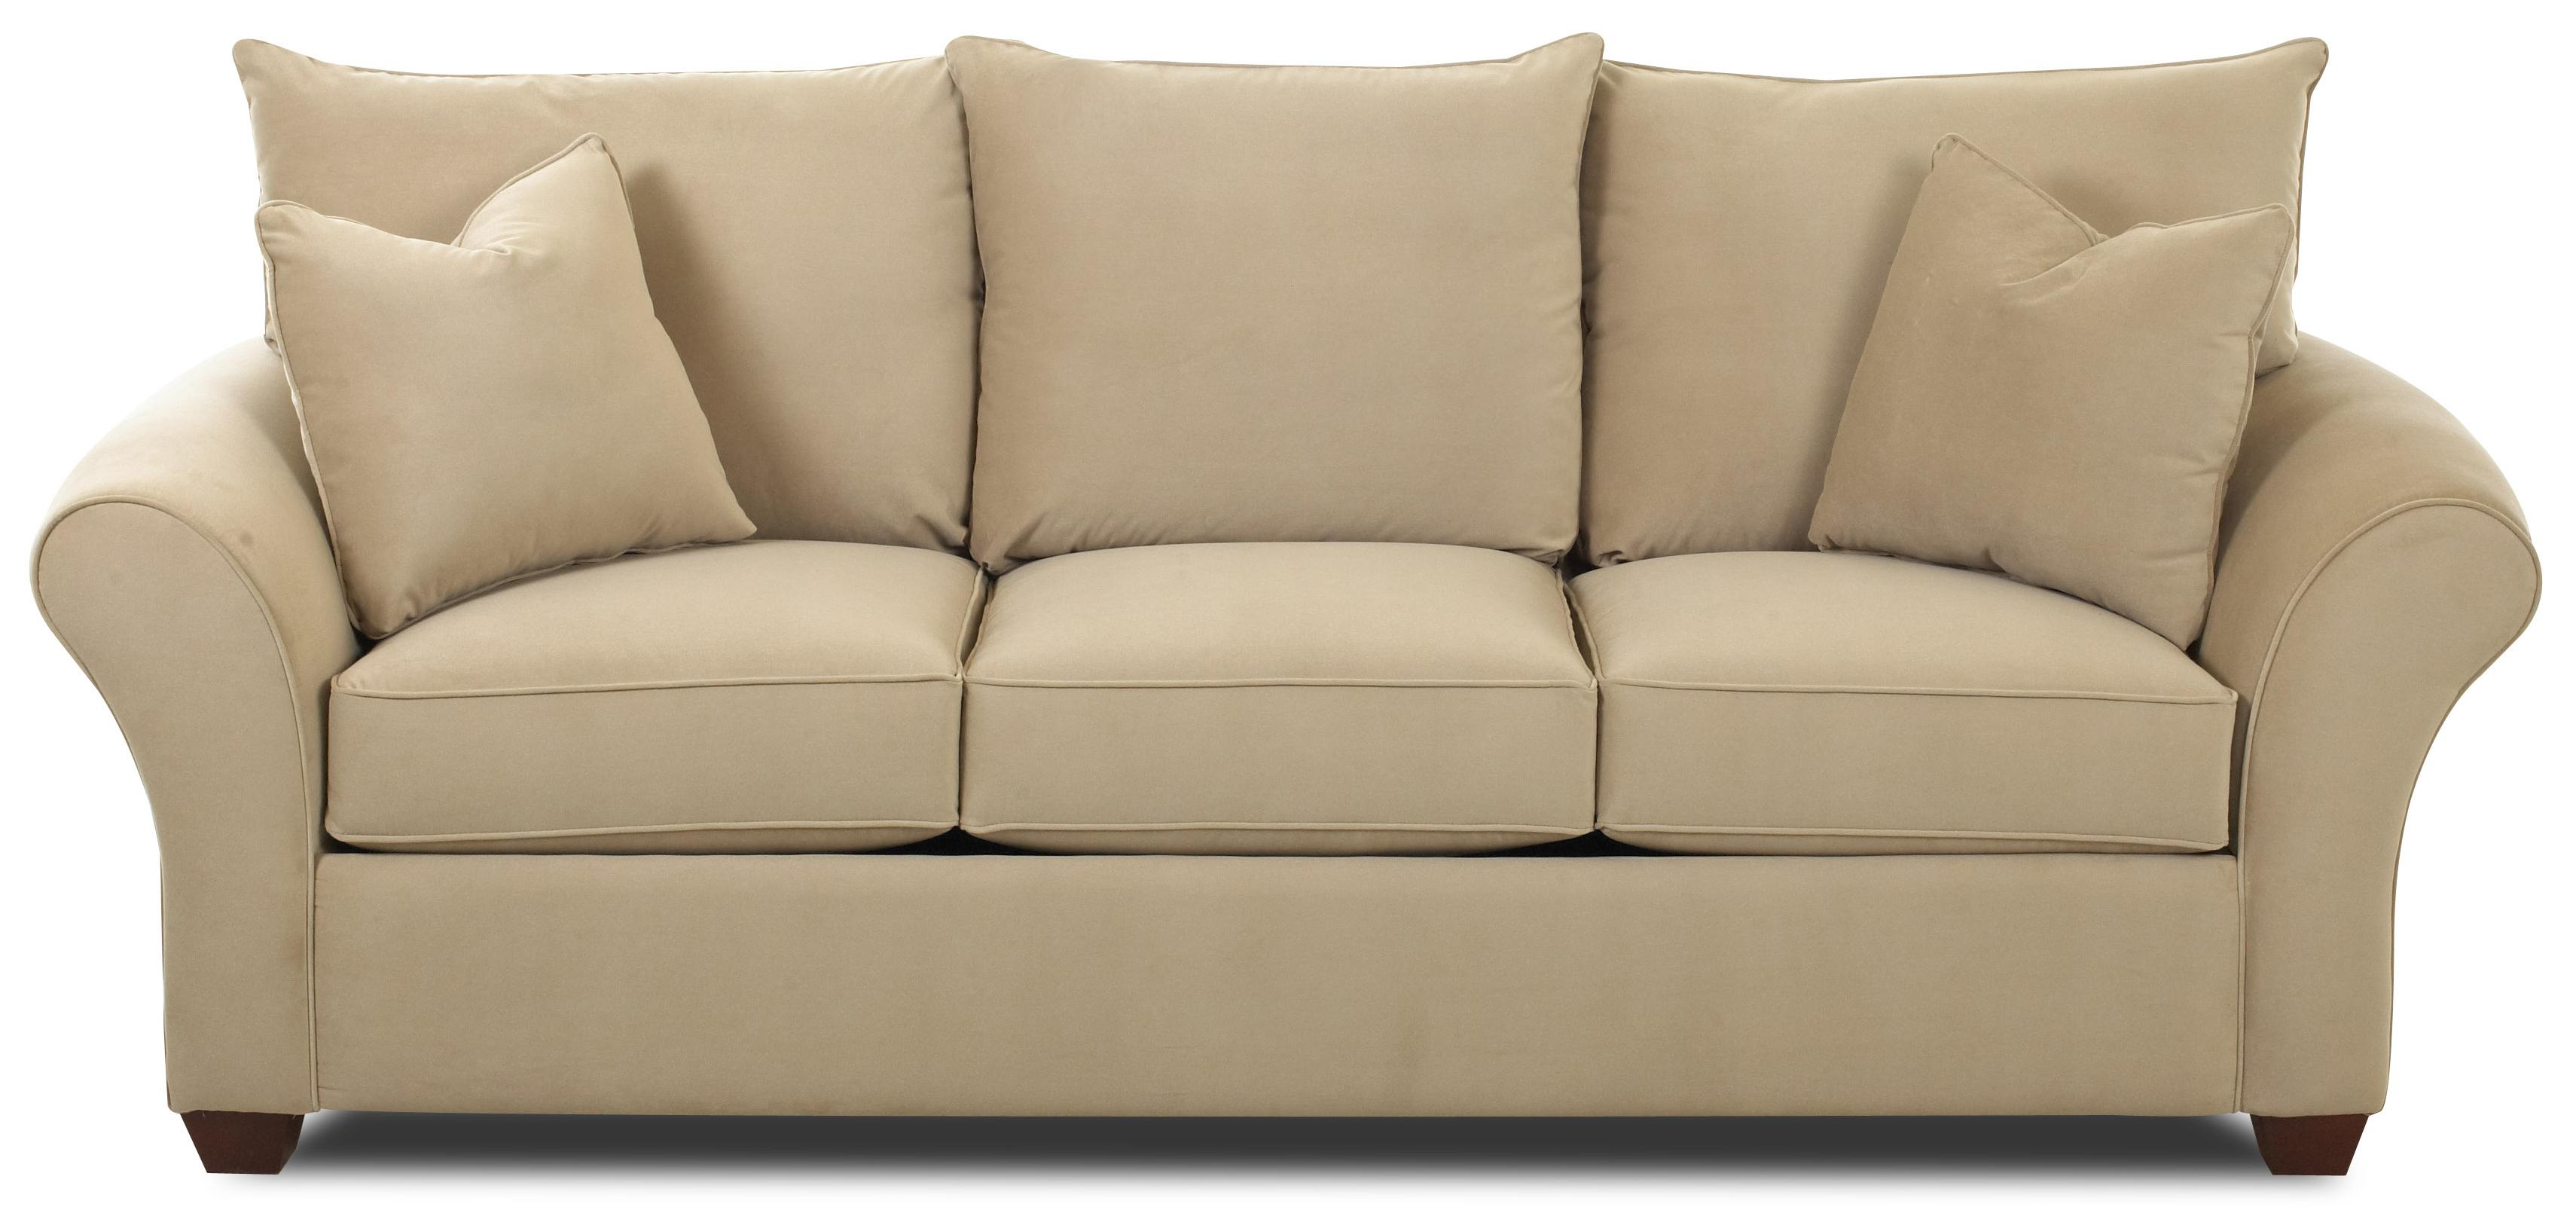 Cheap living room furniture york pa Modern furniture for your